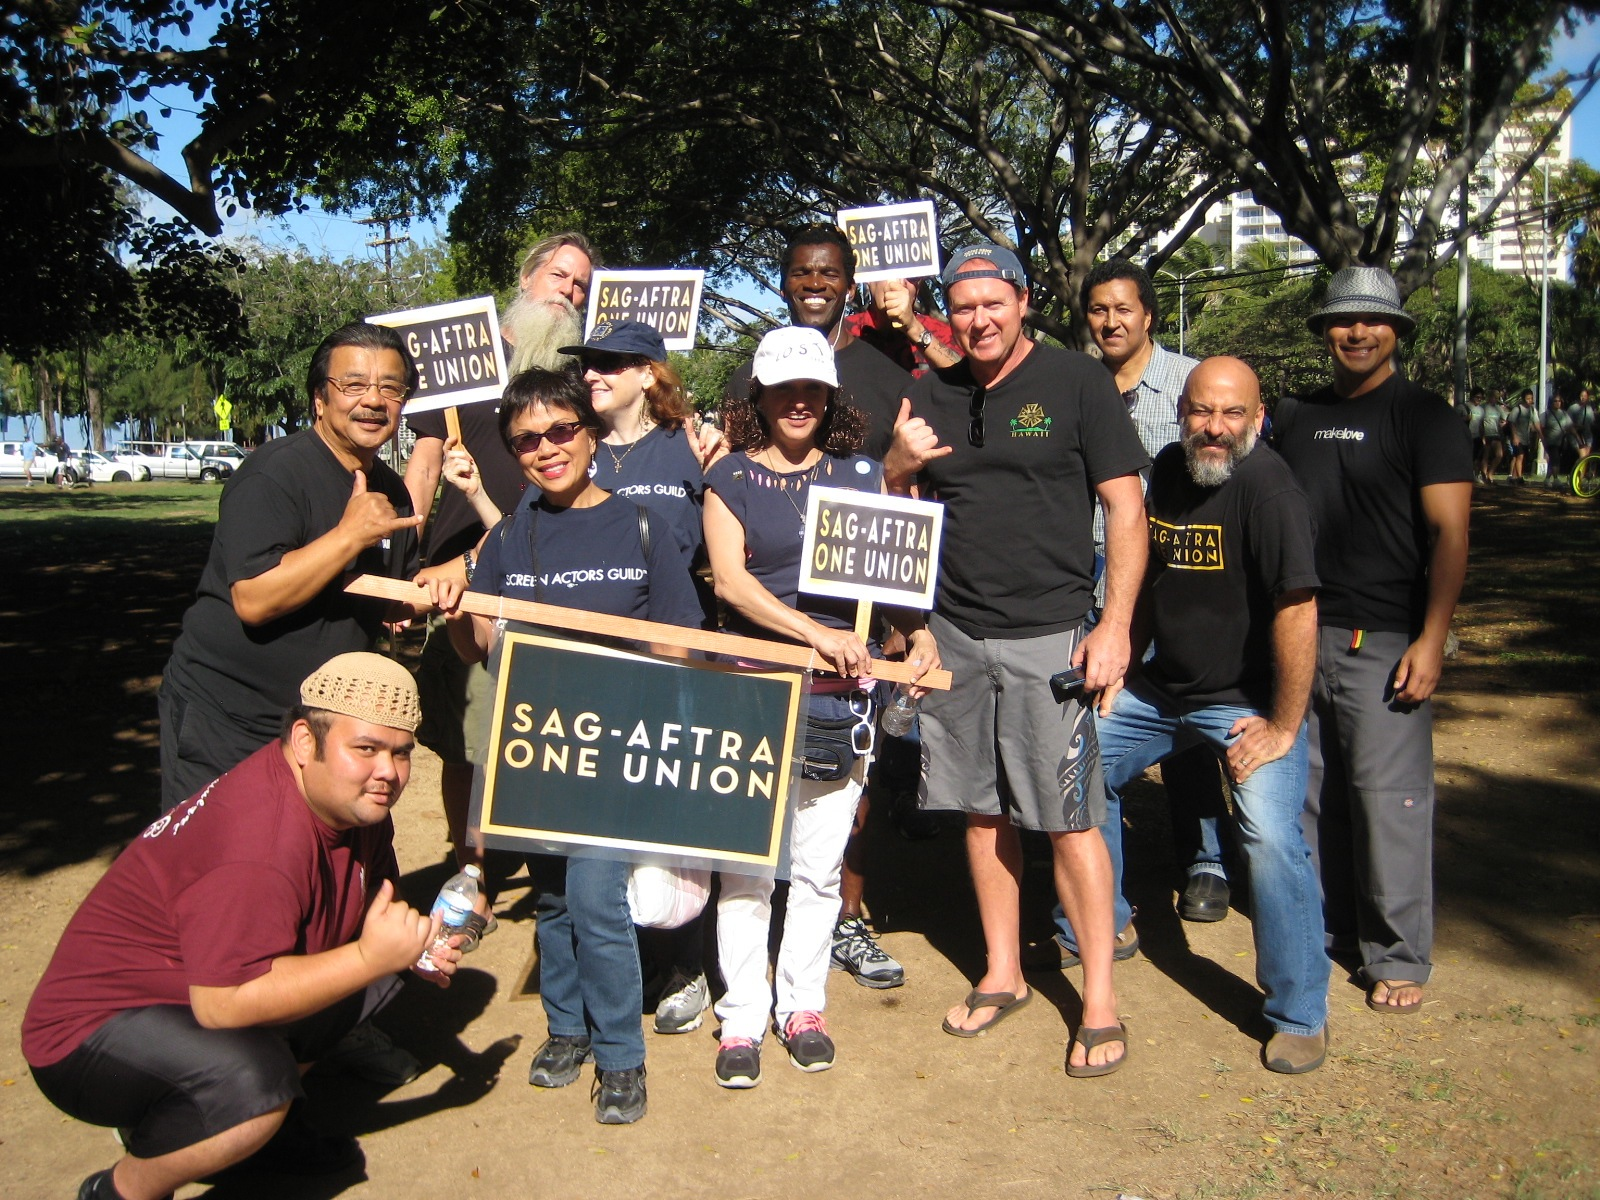 SAG-AFTRA members group shot